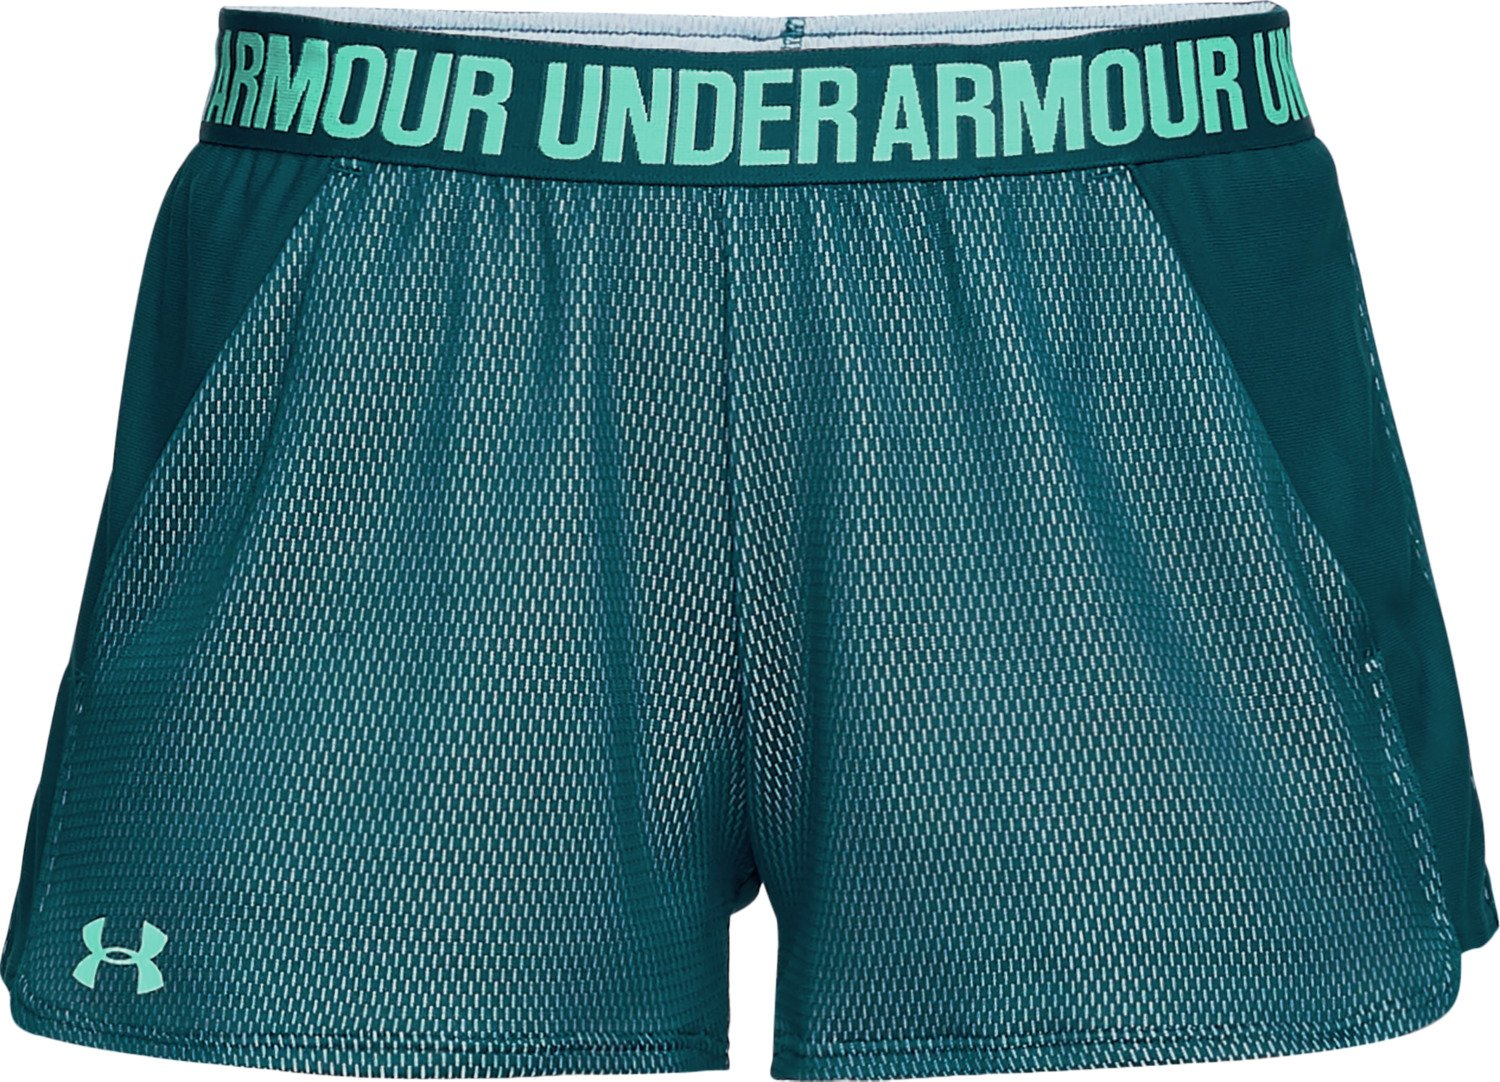 promo code e5f78 250fb Display product reviews for Under Armour Women s Play Up 2.0 Novelty Short  This product is currently selected